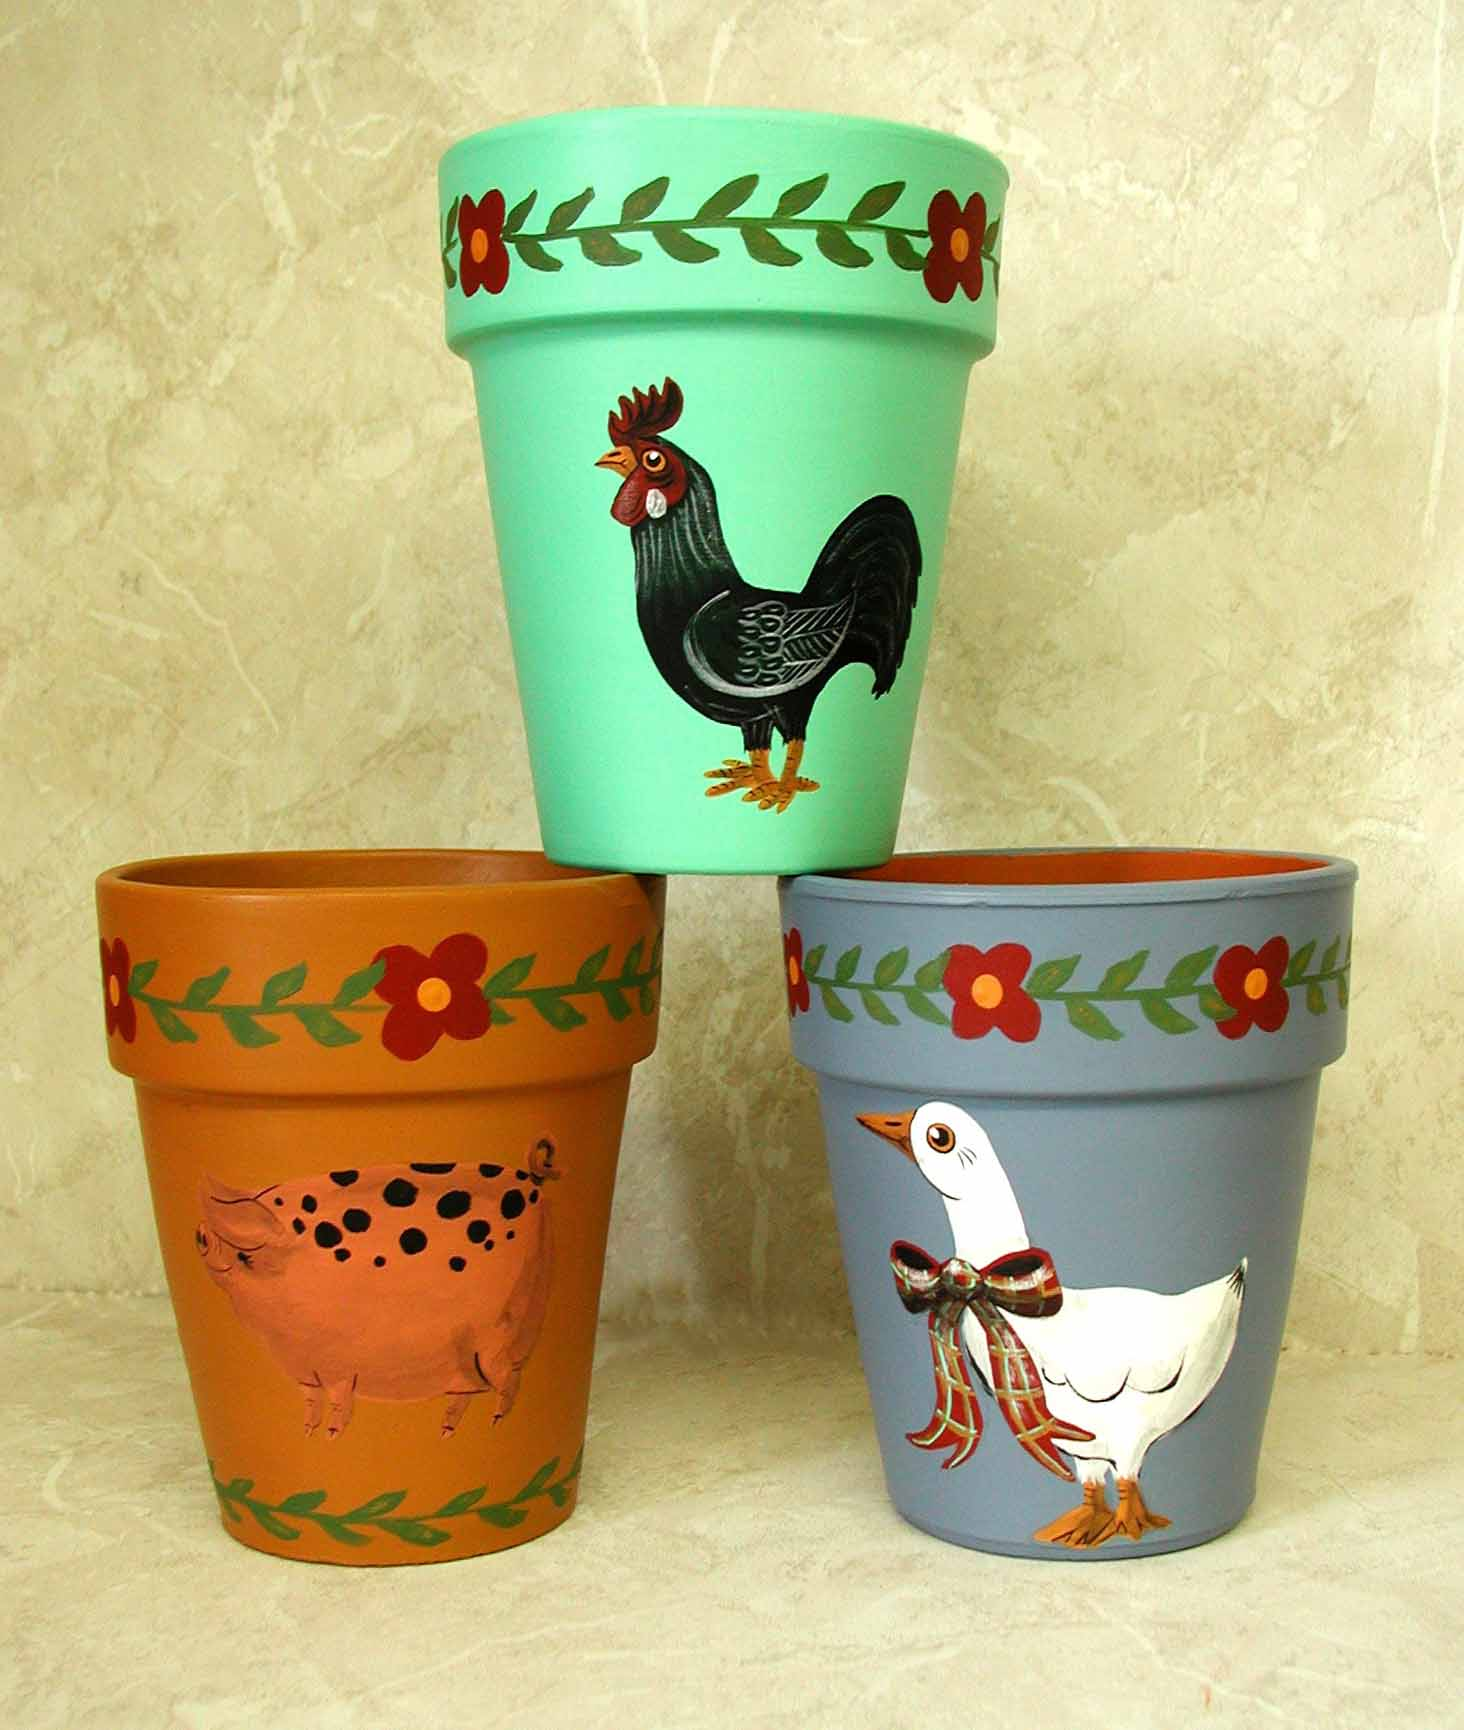 Painted Clay Pot Designs http://decorockart.homestead.com/ClayPots.html